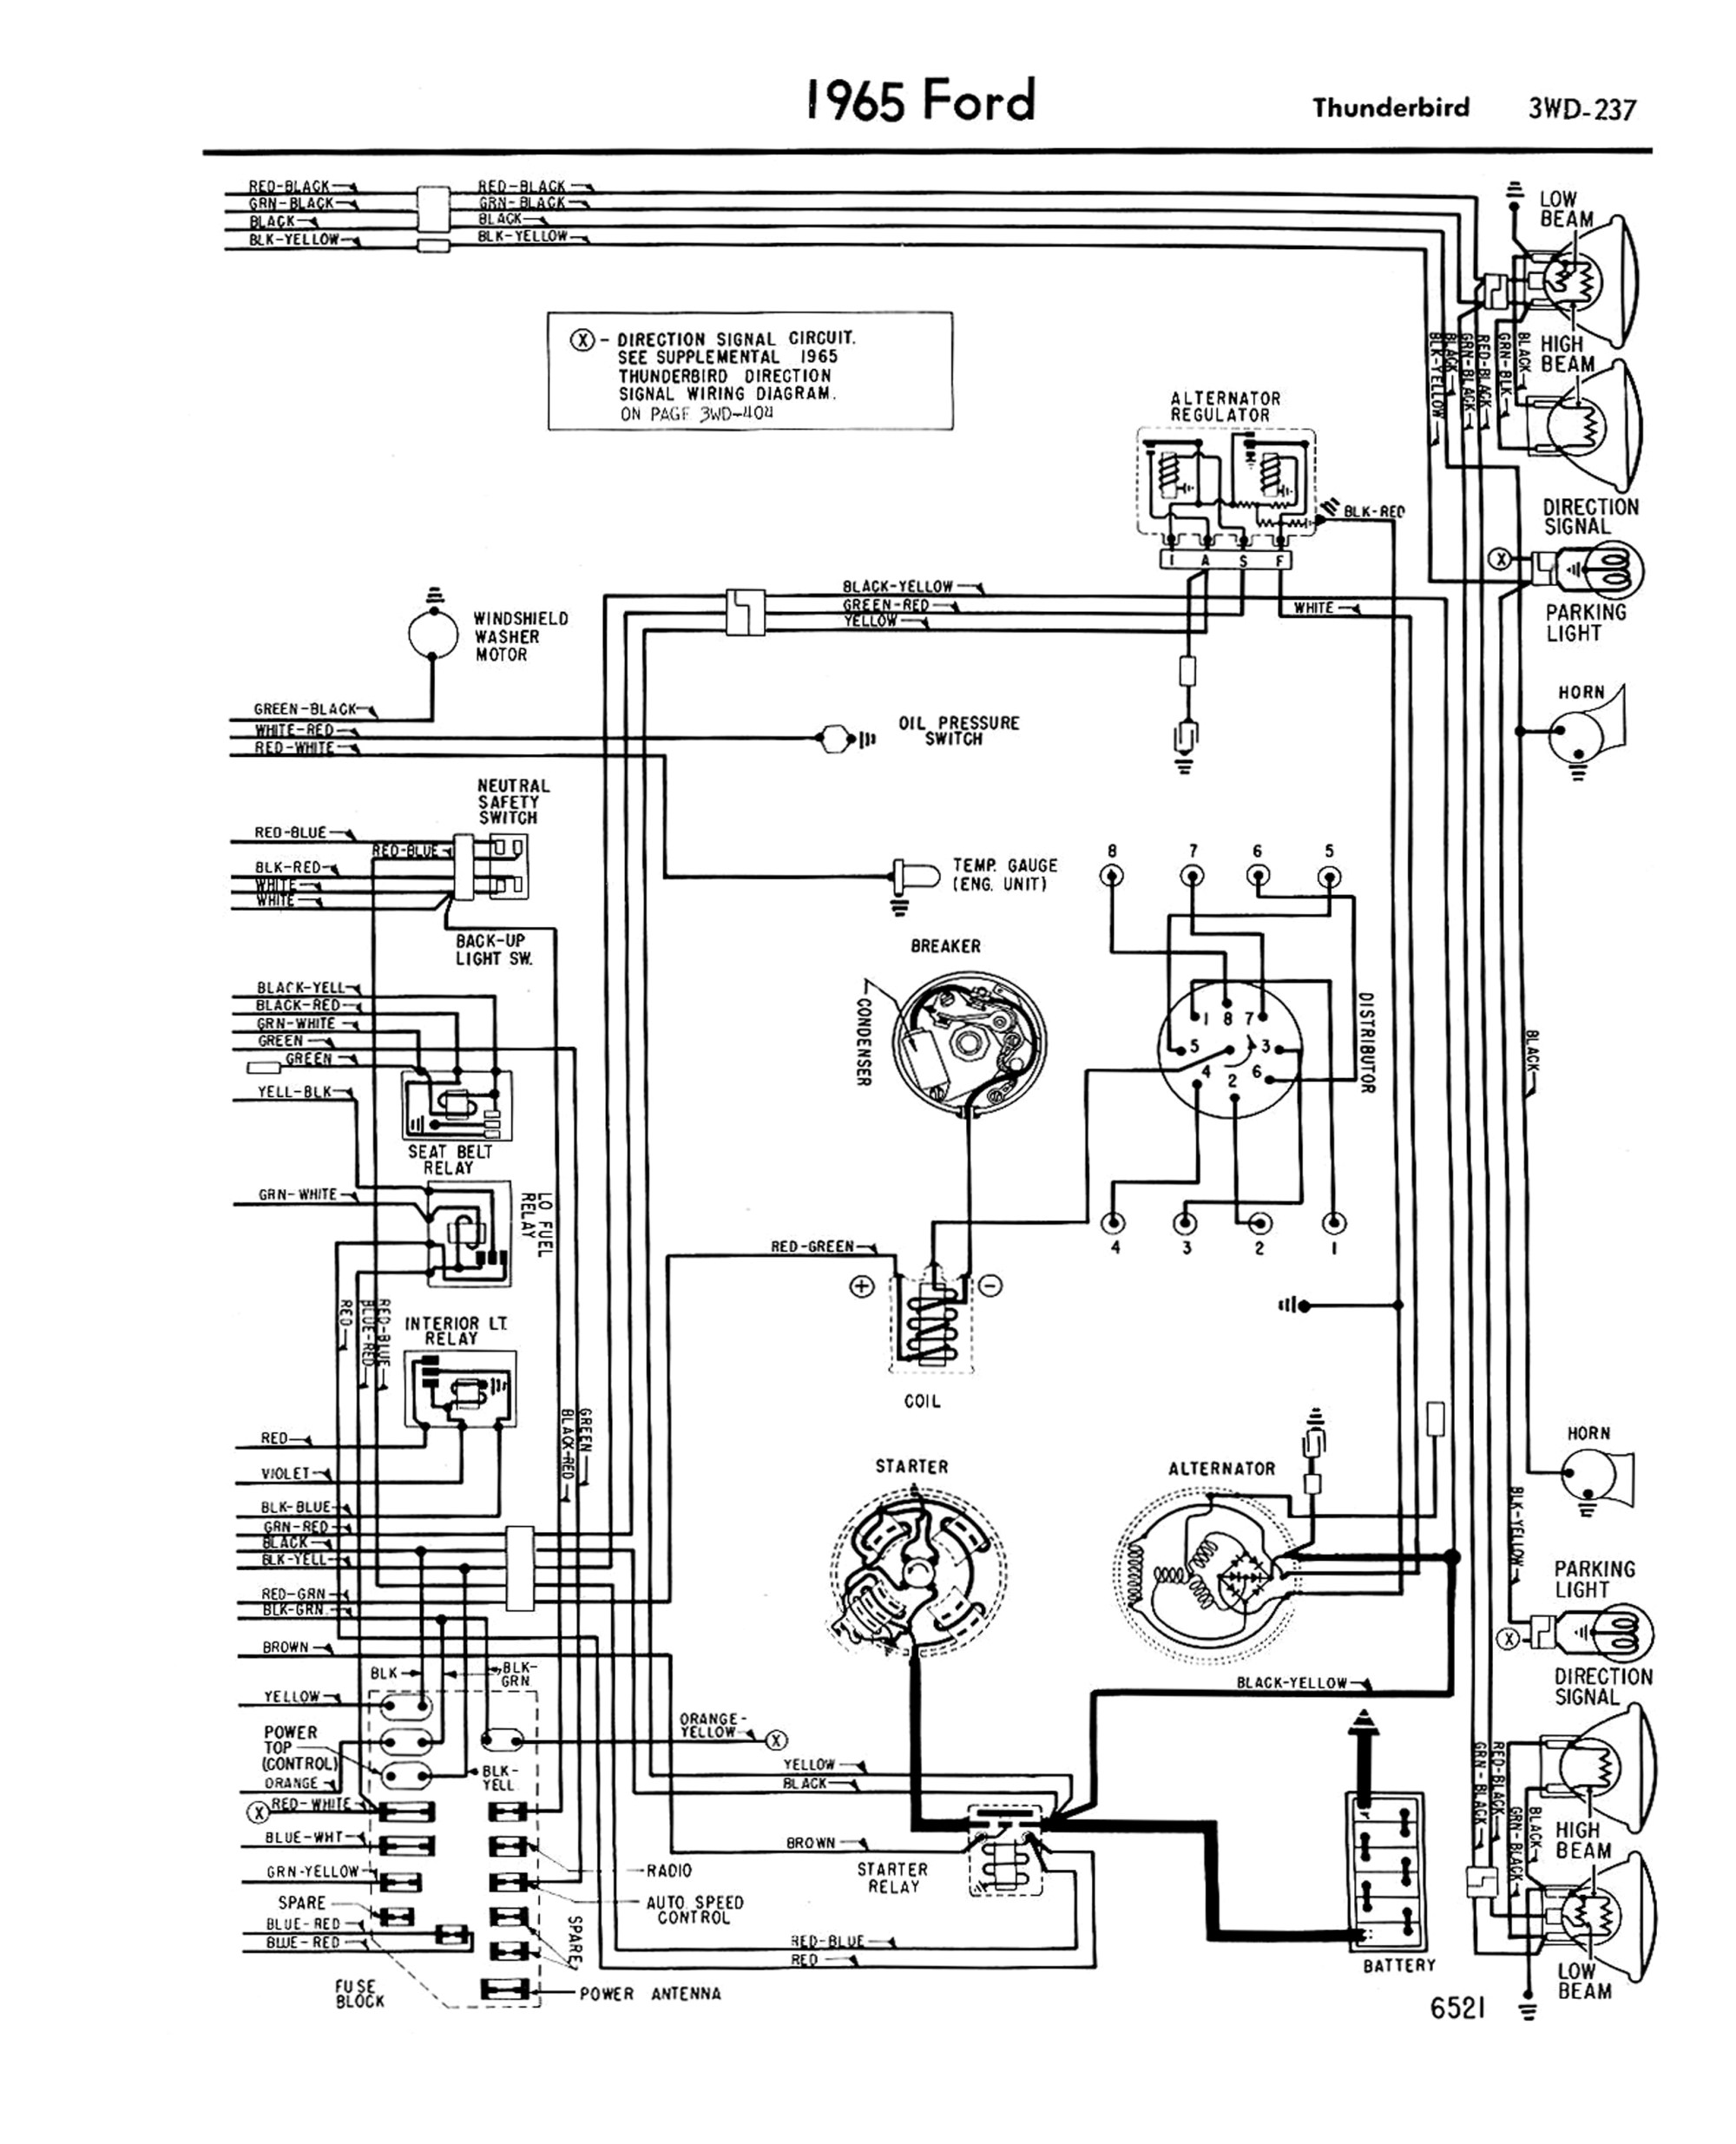 hight resolution of 1997 ford thunderbird wiring diagram wiring diagram toolbox 66 t bird wiring diagram 66 thunderbird wiring diagram